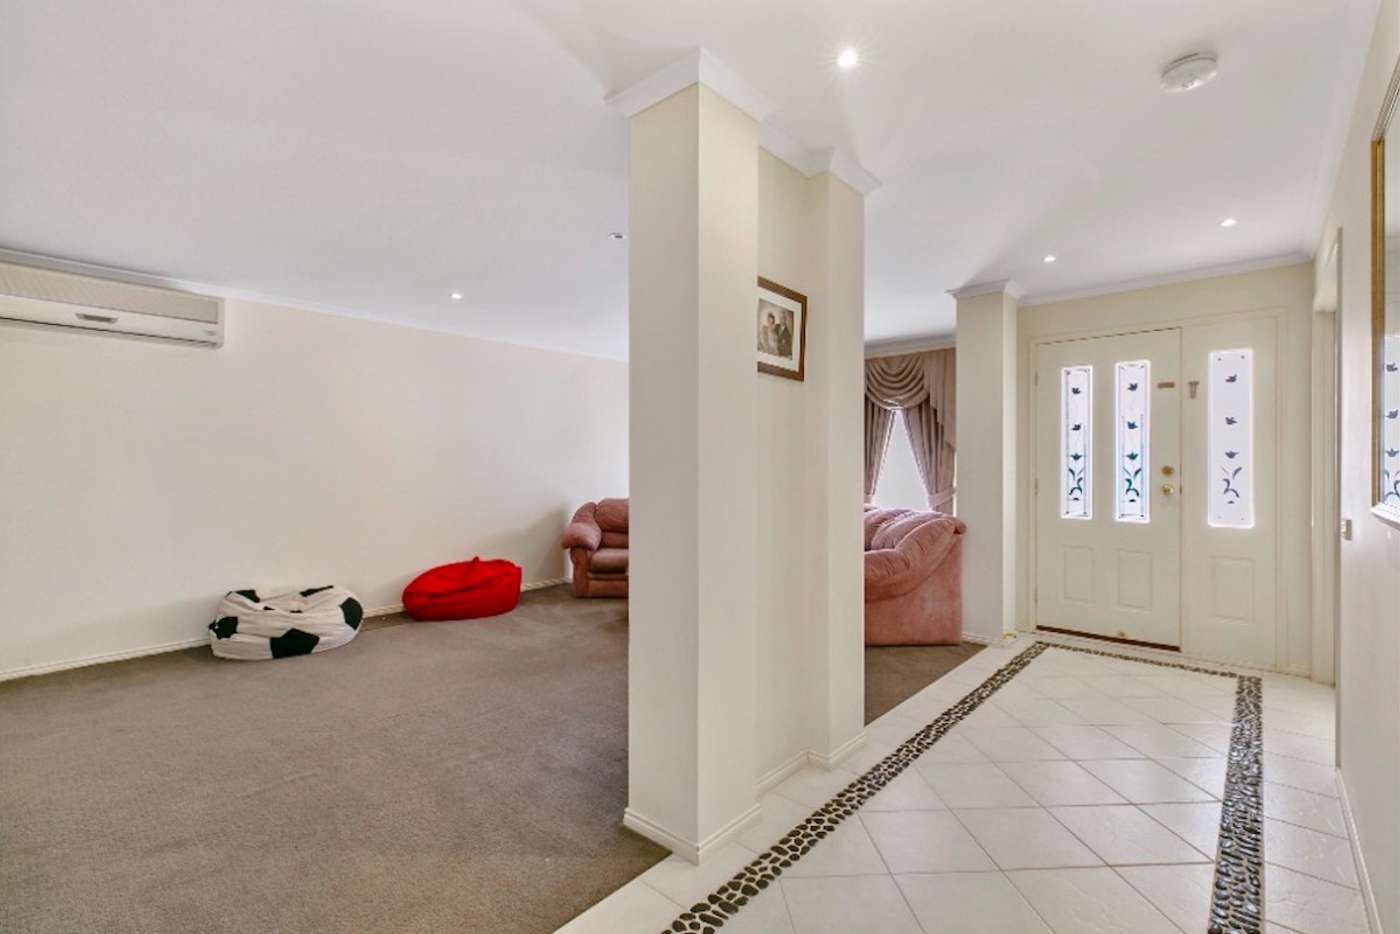 Seventh view of Homely house listing, 13 Iriswells Close, Tooradin VIC 3980